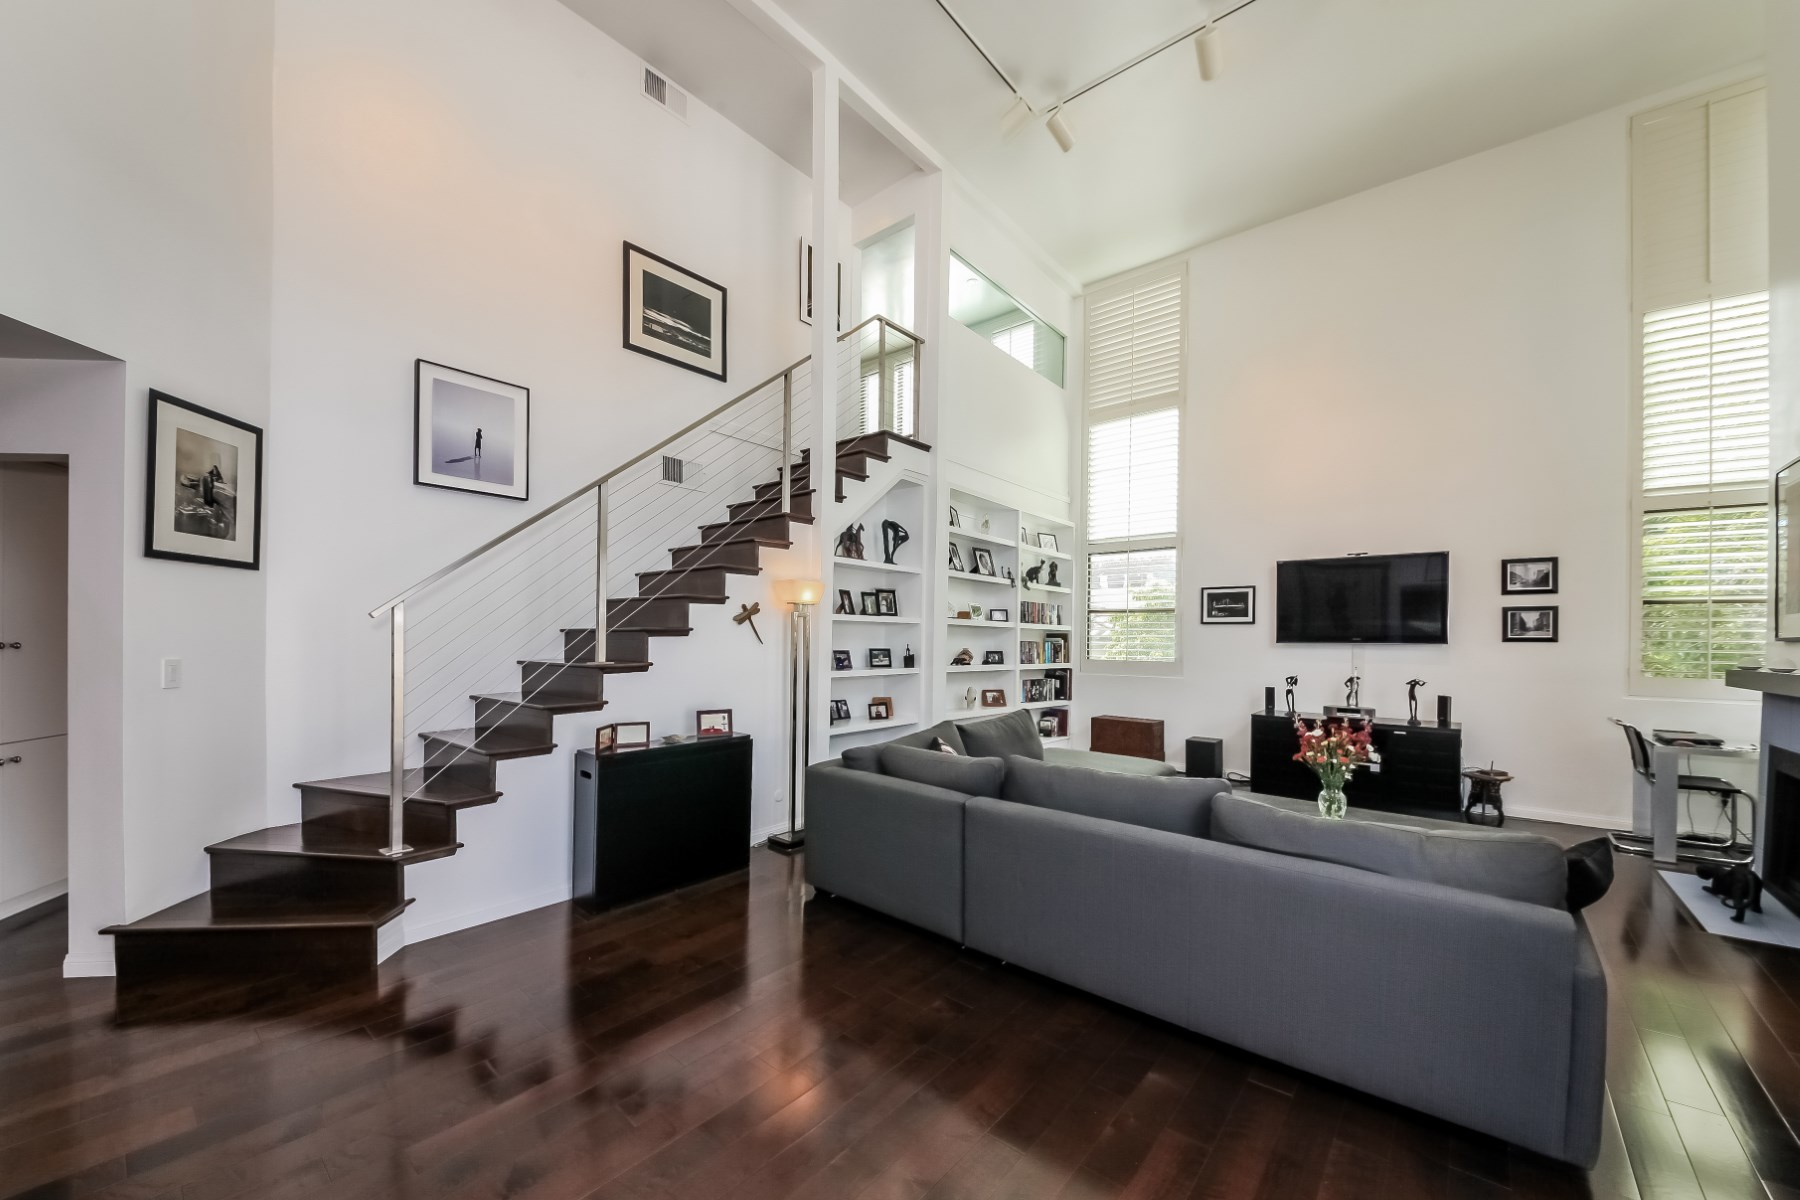 Property For Sale at Stunning 2-Story Contemporary Penthouse